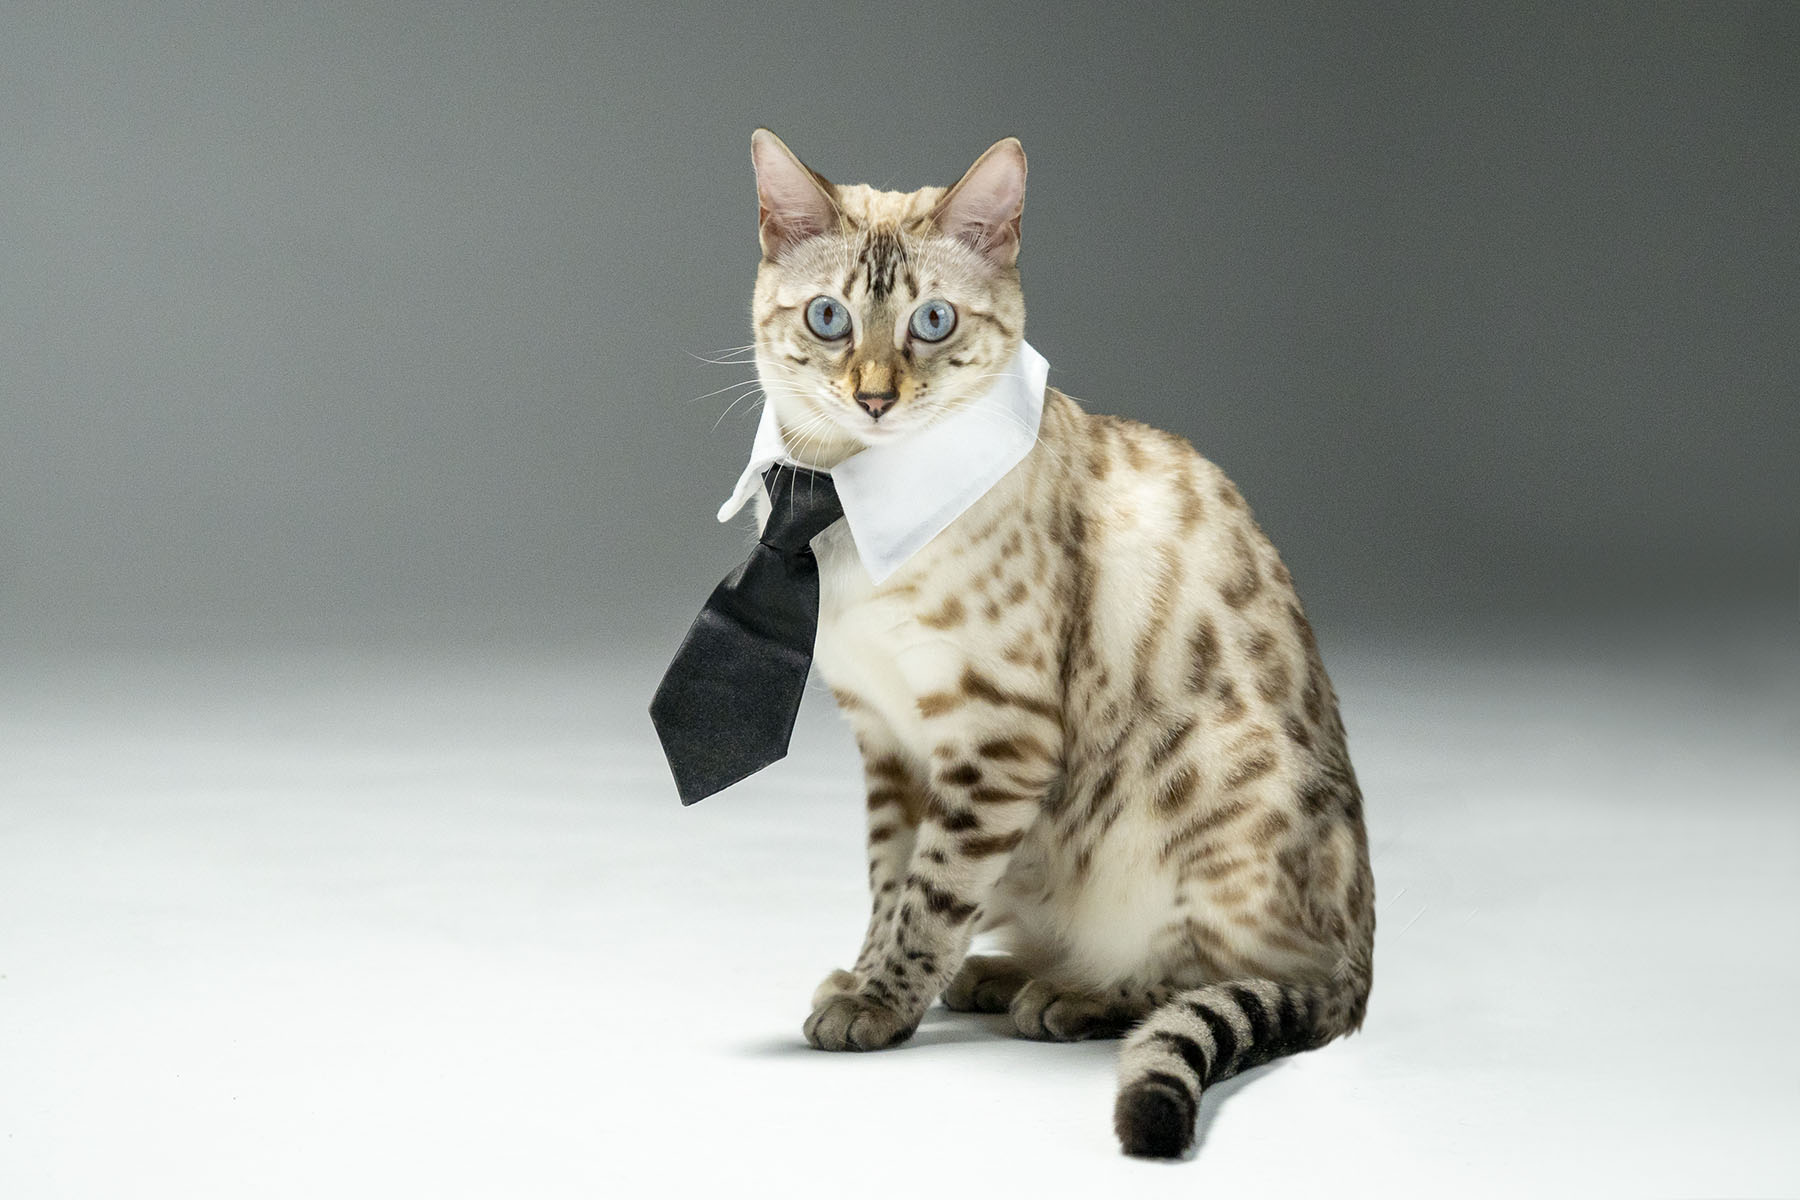 Cat with tie (Variant 3)